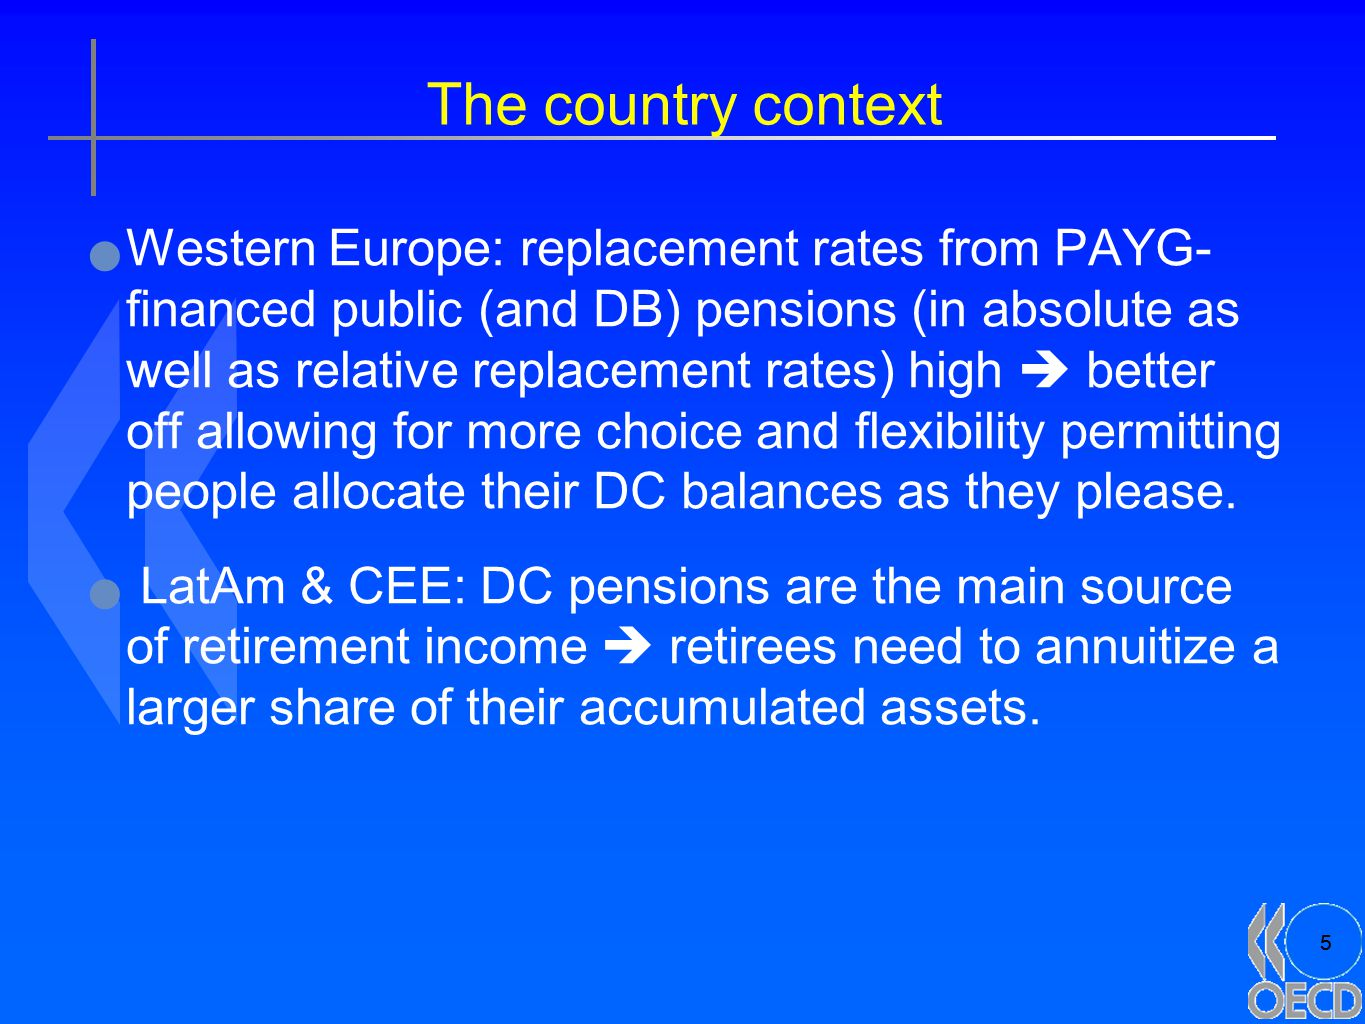 5 The country context Western Europe: replacement rates from PAYG- financed public (and DB) pensions (in absolute as well as relative replacement rates) high  better off allowing for more choice and flexibility permitting people allocate their DC balances as they please.